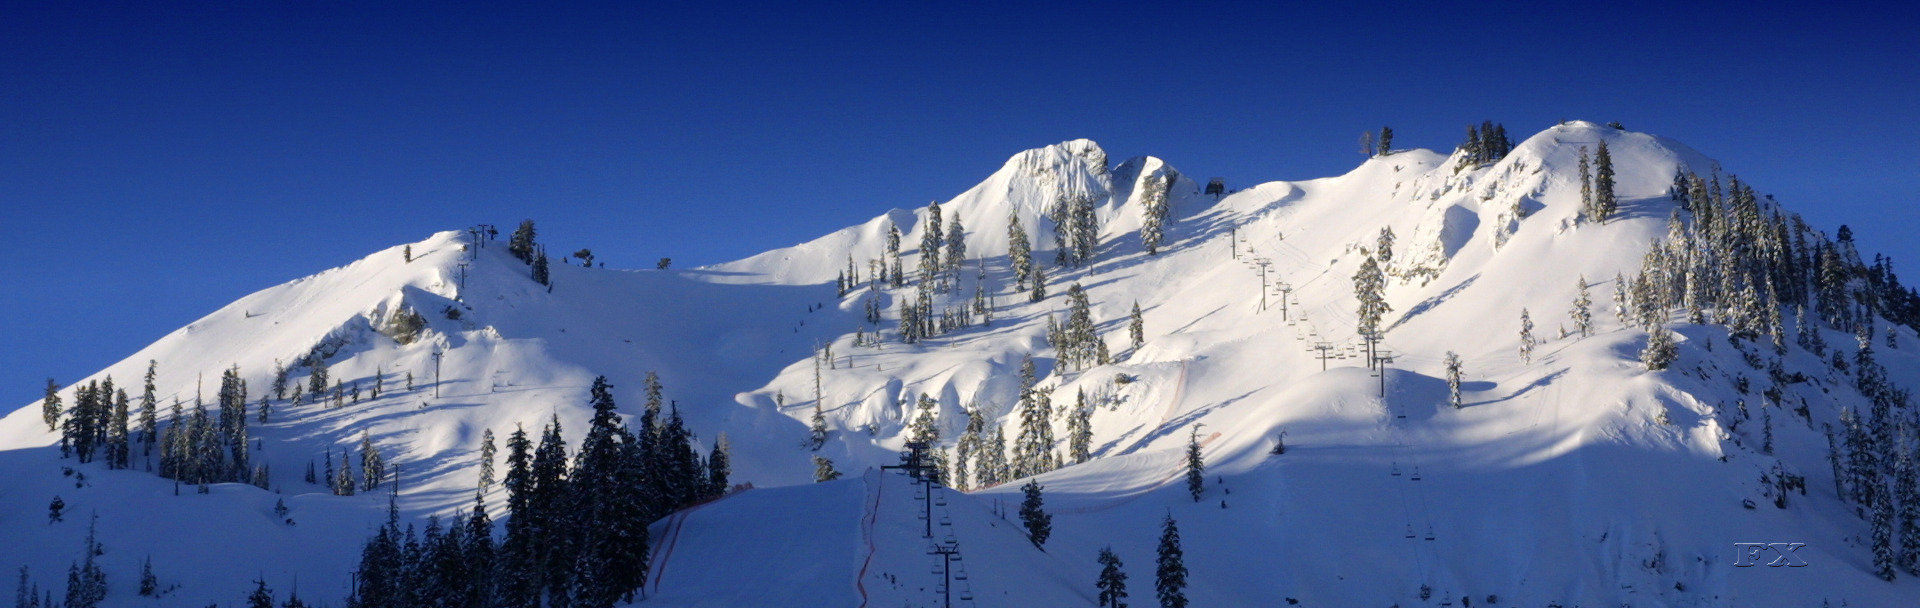 The legendary KT-22 ski lift in Squaw